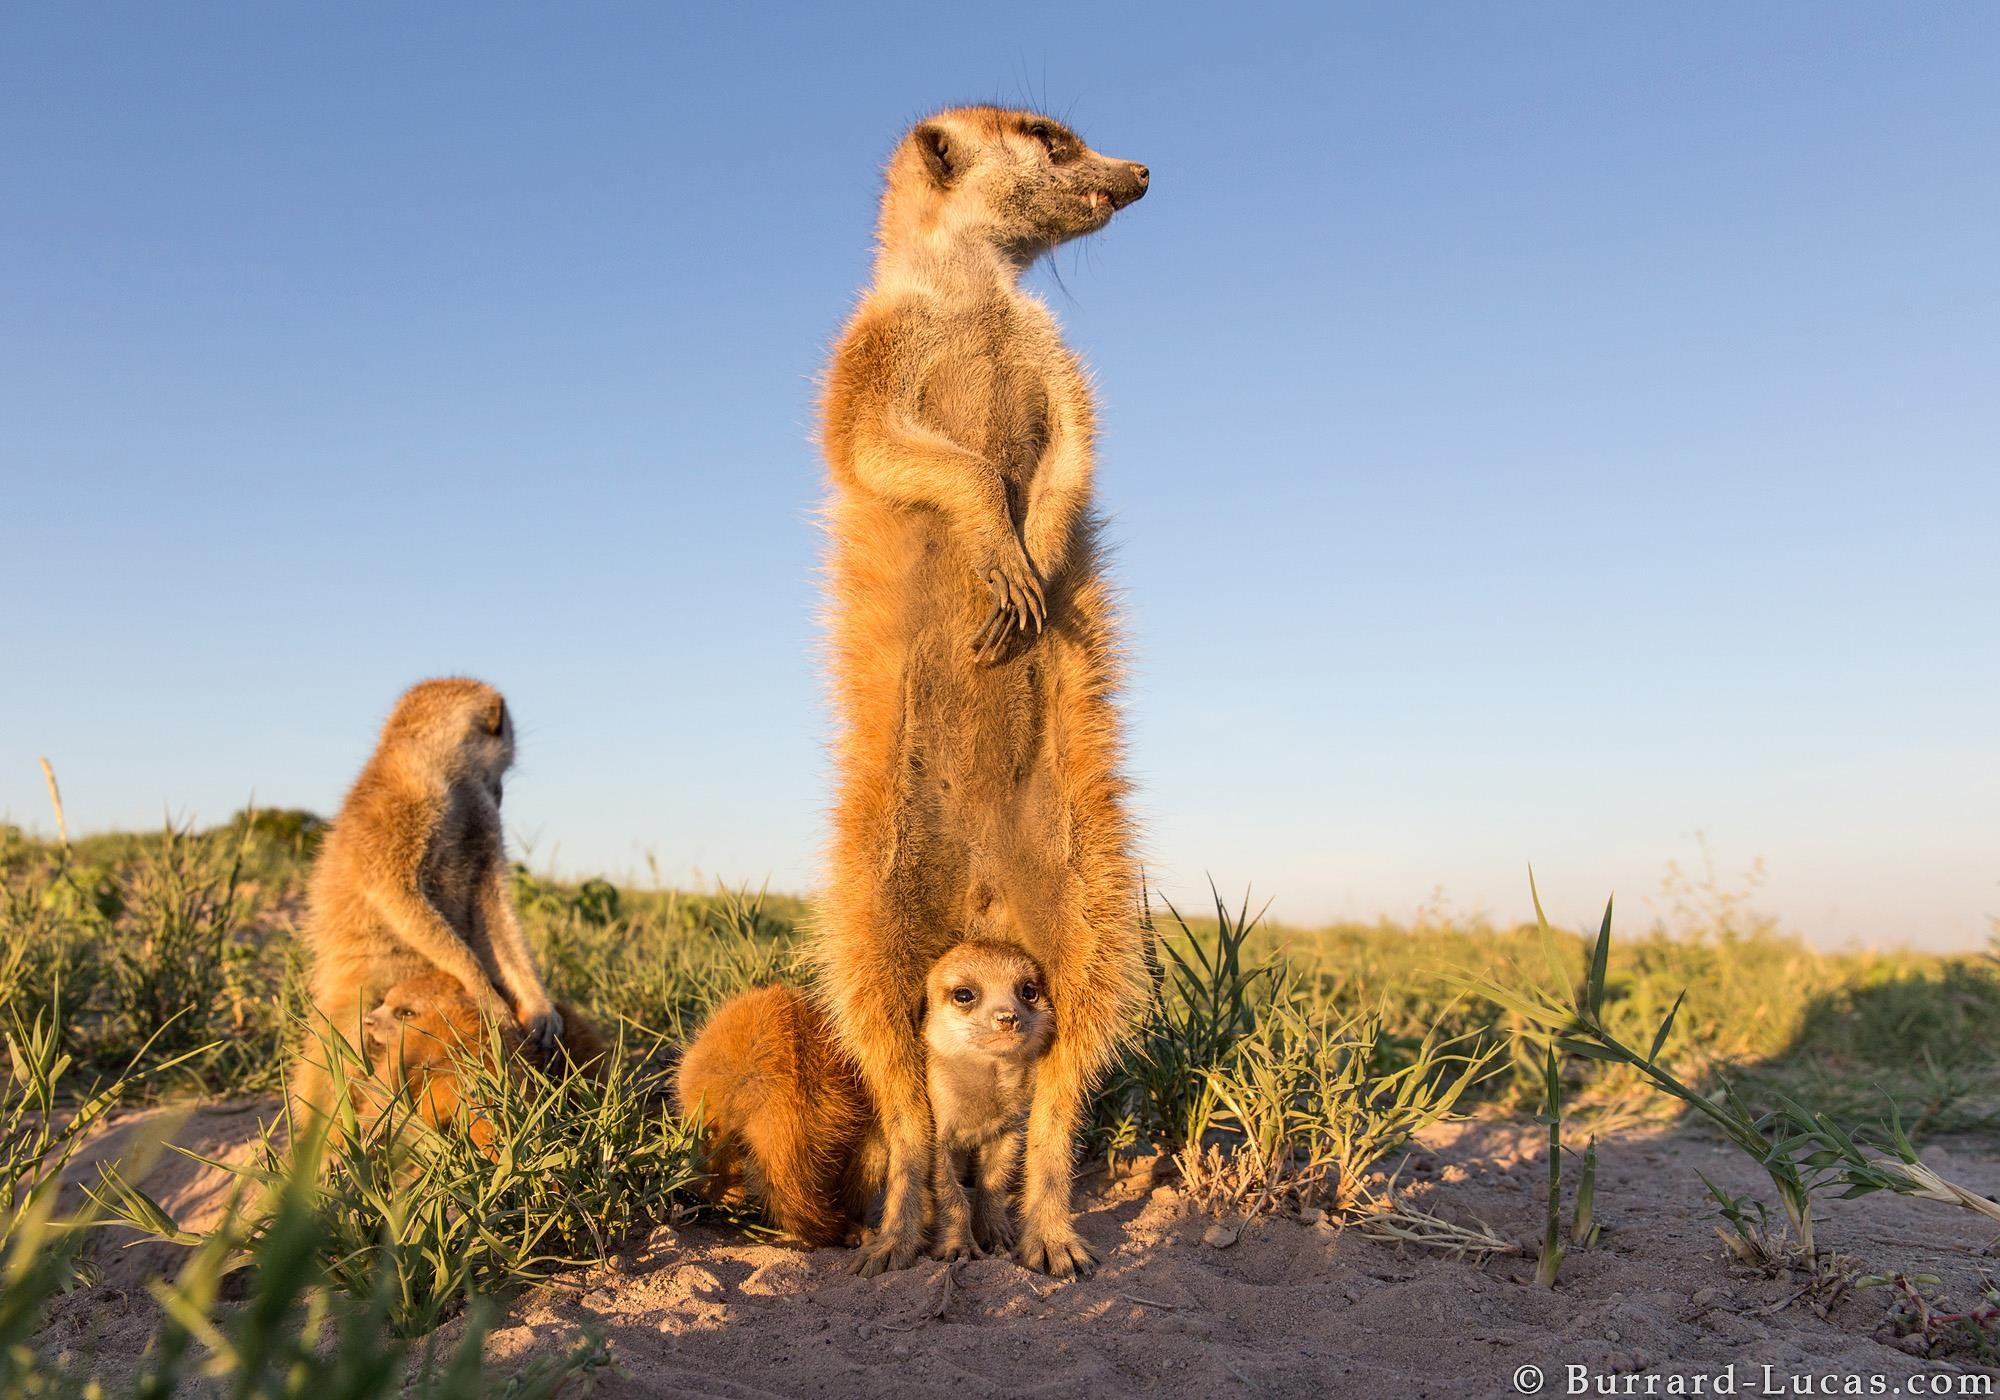 by Will Burrard-Lucas